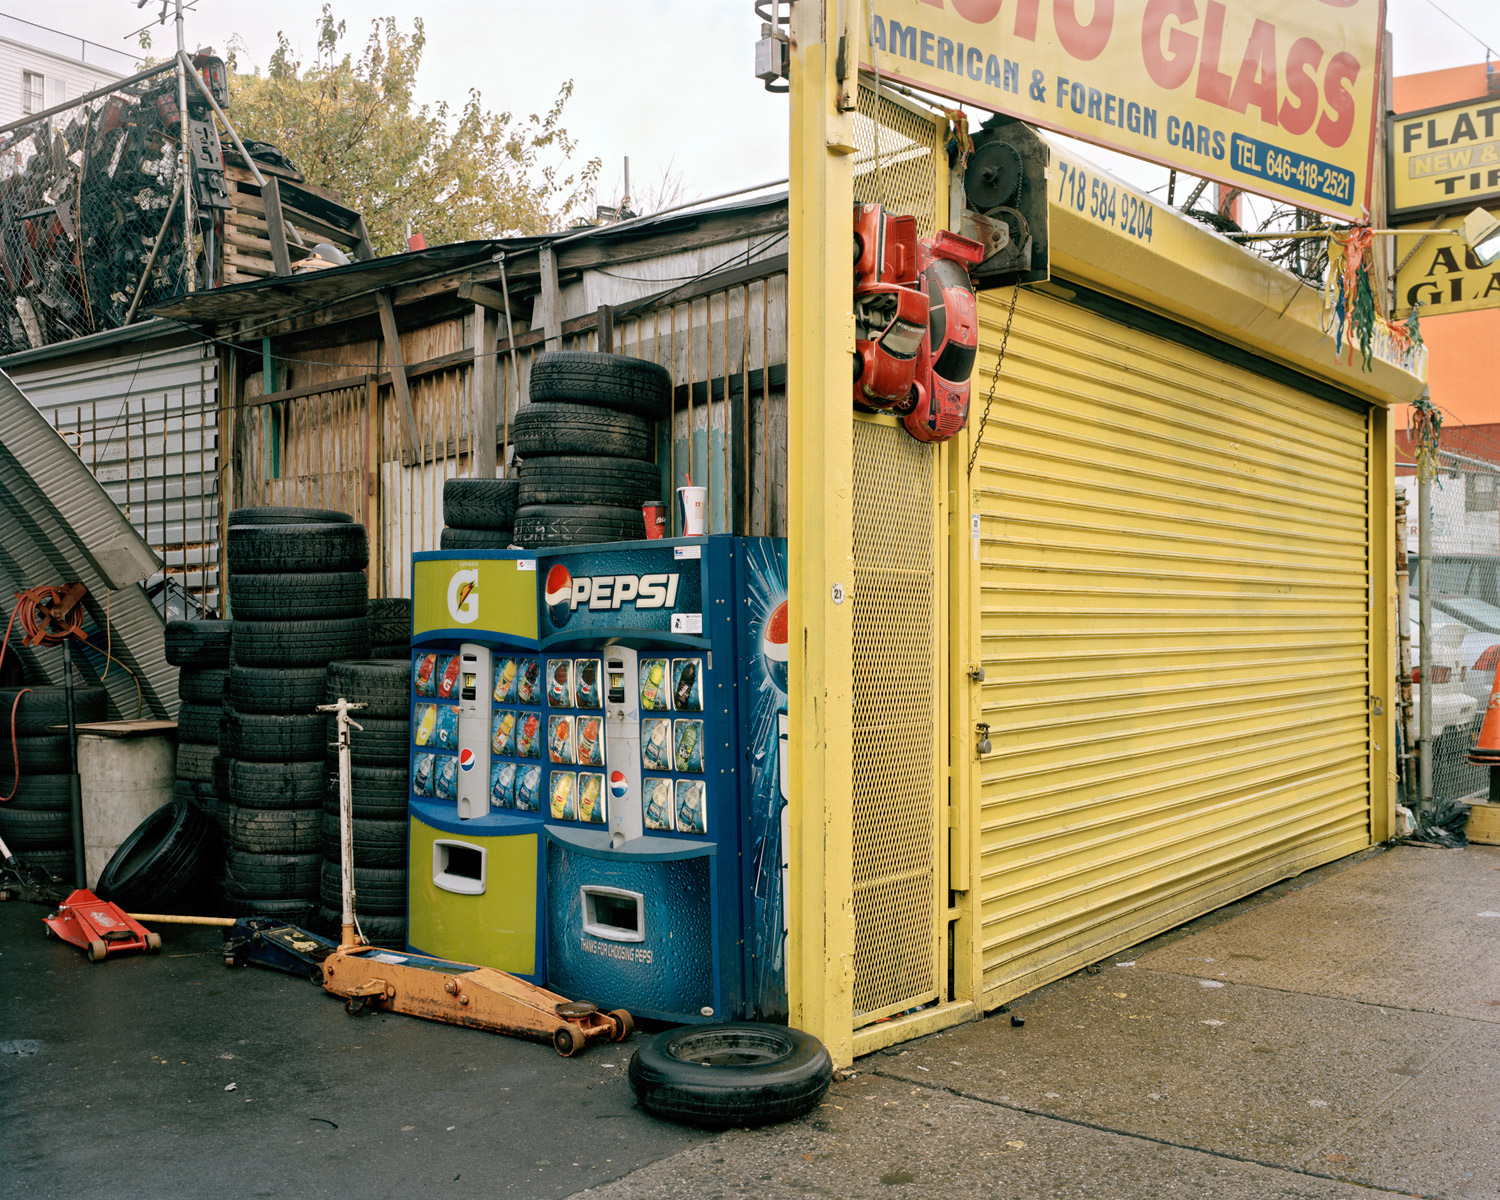 Soda Machine at Tire Shop Looking North from Jerome Avenue & West 181st Street, Bronx, 2009